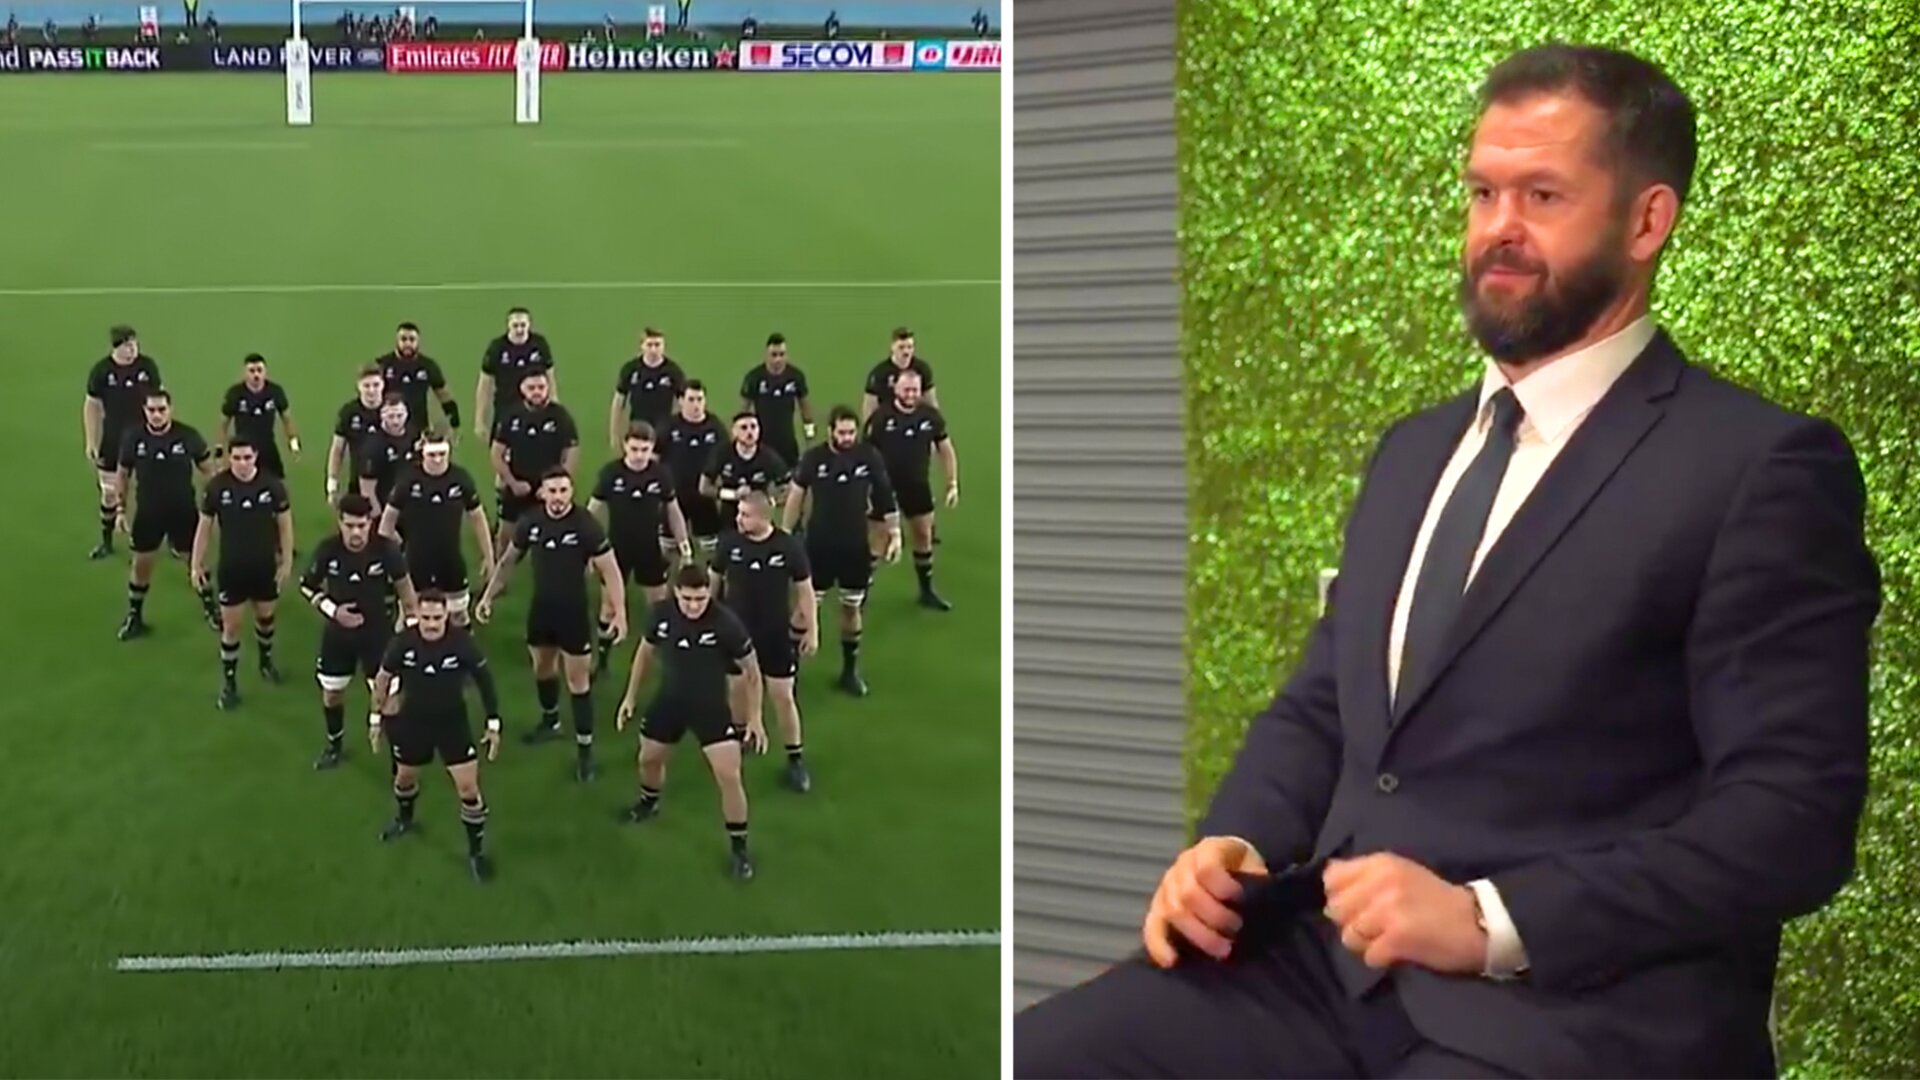 Andy Farrell can't hide his emotions with reaction to Rugby World Cup draw - Possible All Black quarter final